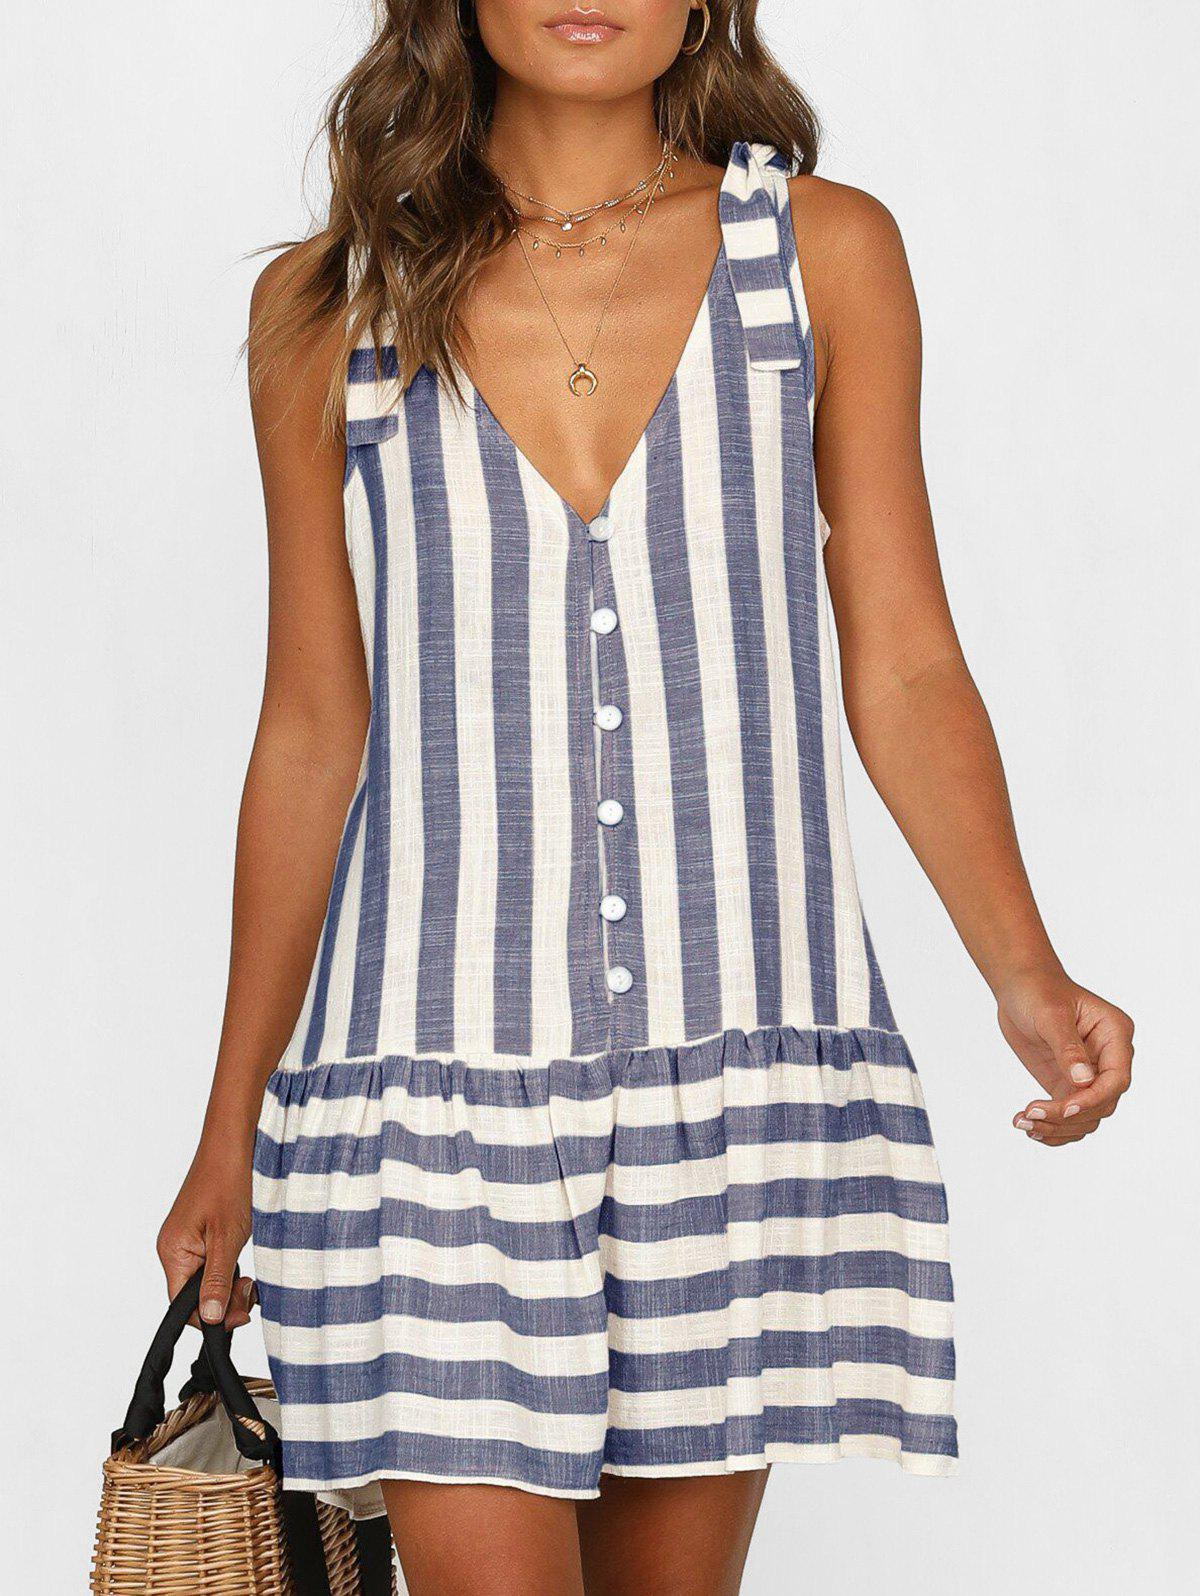 New Plunge Striped Casual Tank Dress